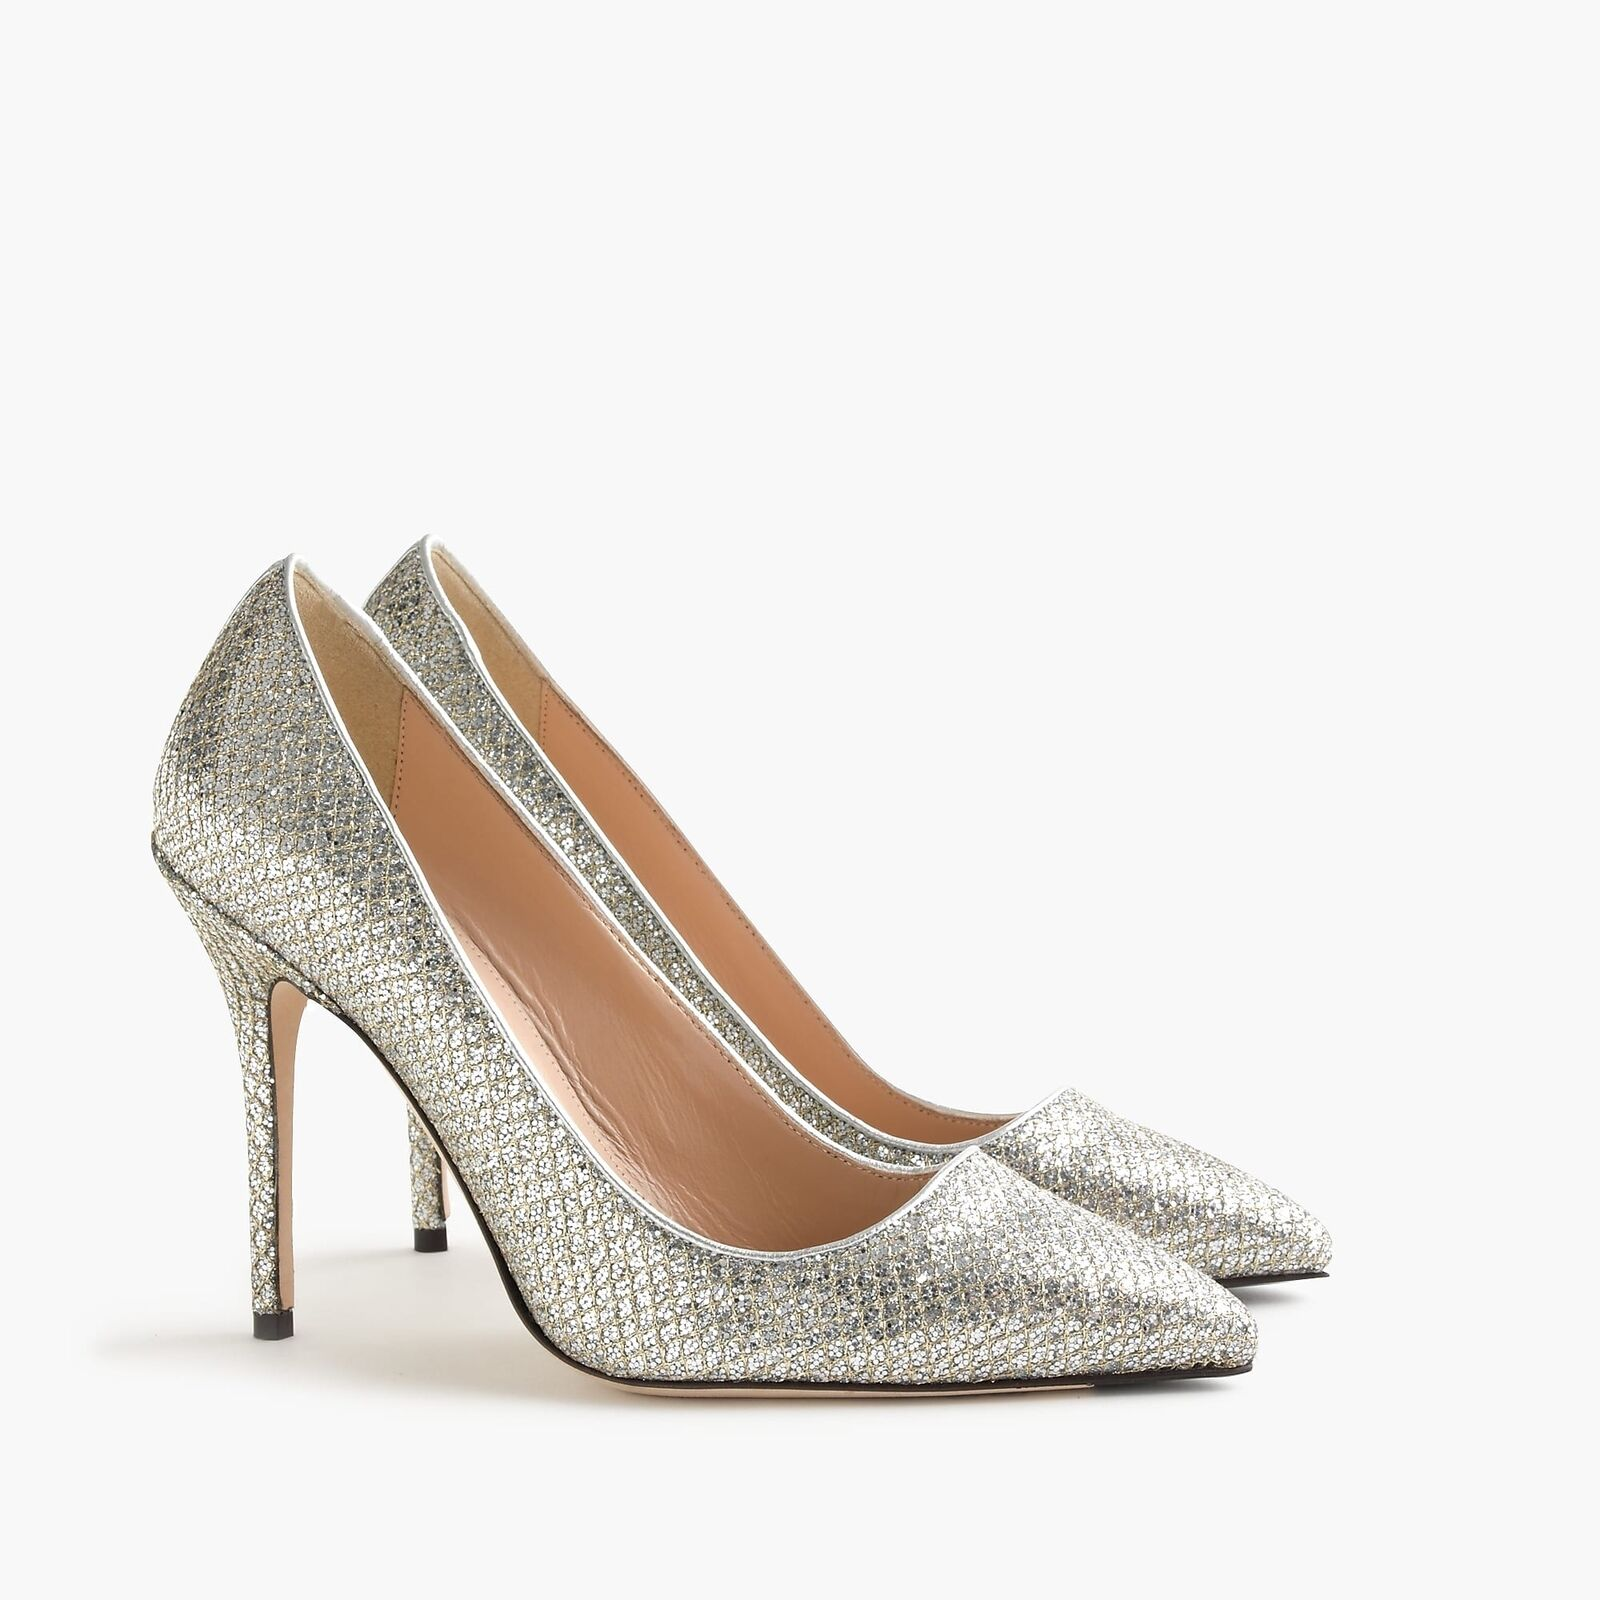 caldo NWOB J. Crew Roxie Glitter Pumps Dimensione 9 SOLD SOLD SOLD OUT  Retailed New  278  risposte rapide